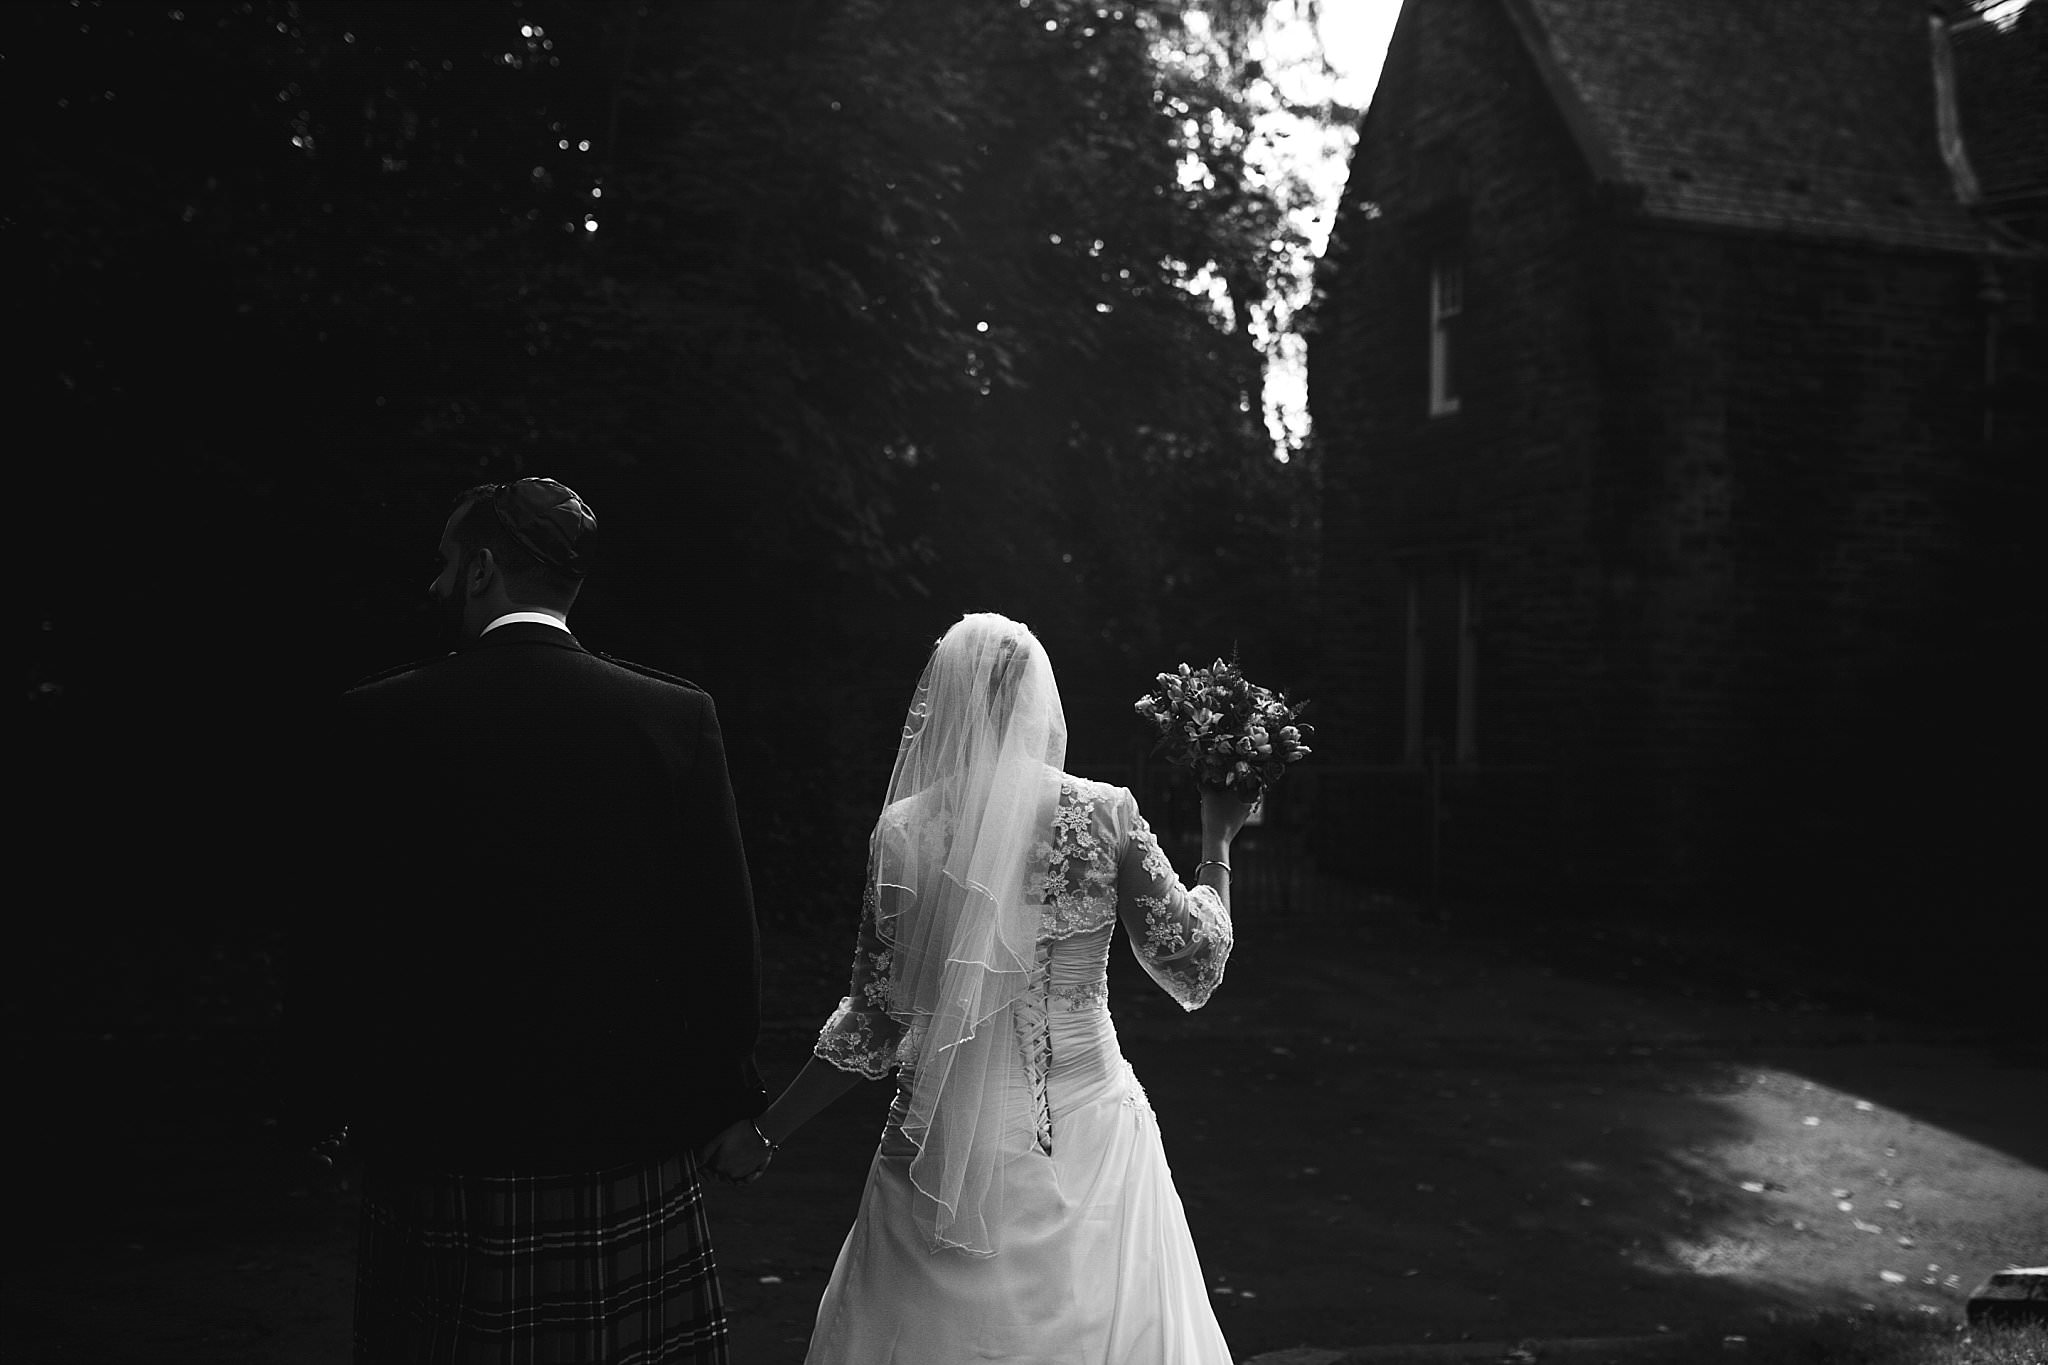 The Gibsons,documentary wedding photographers,jewish wedding glasgow,natural wedding photographers,pollokshields burgh hall wedding,wedding south side glasgow,